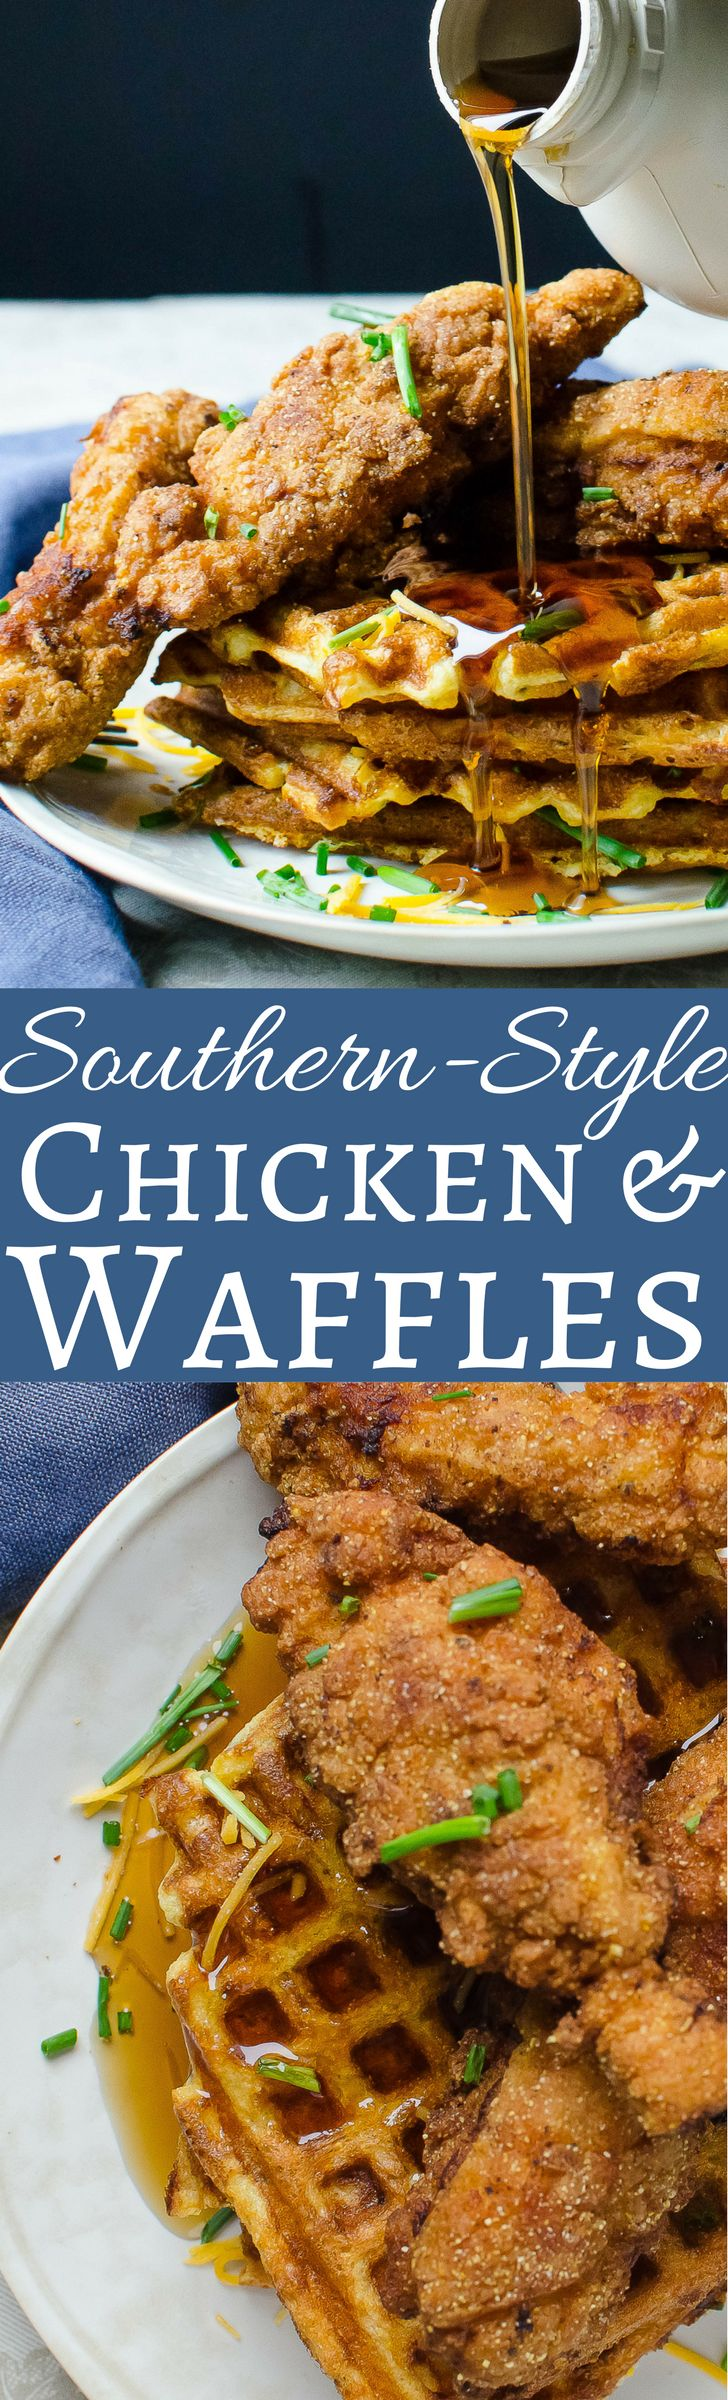 This sweet and savory recipe for fried chicken and waffles is simple and straightforward!  Crunchy chicken strips and crisp-tender waffles! via @GarlicandZest